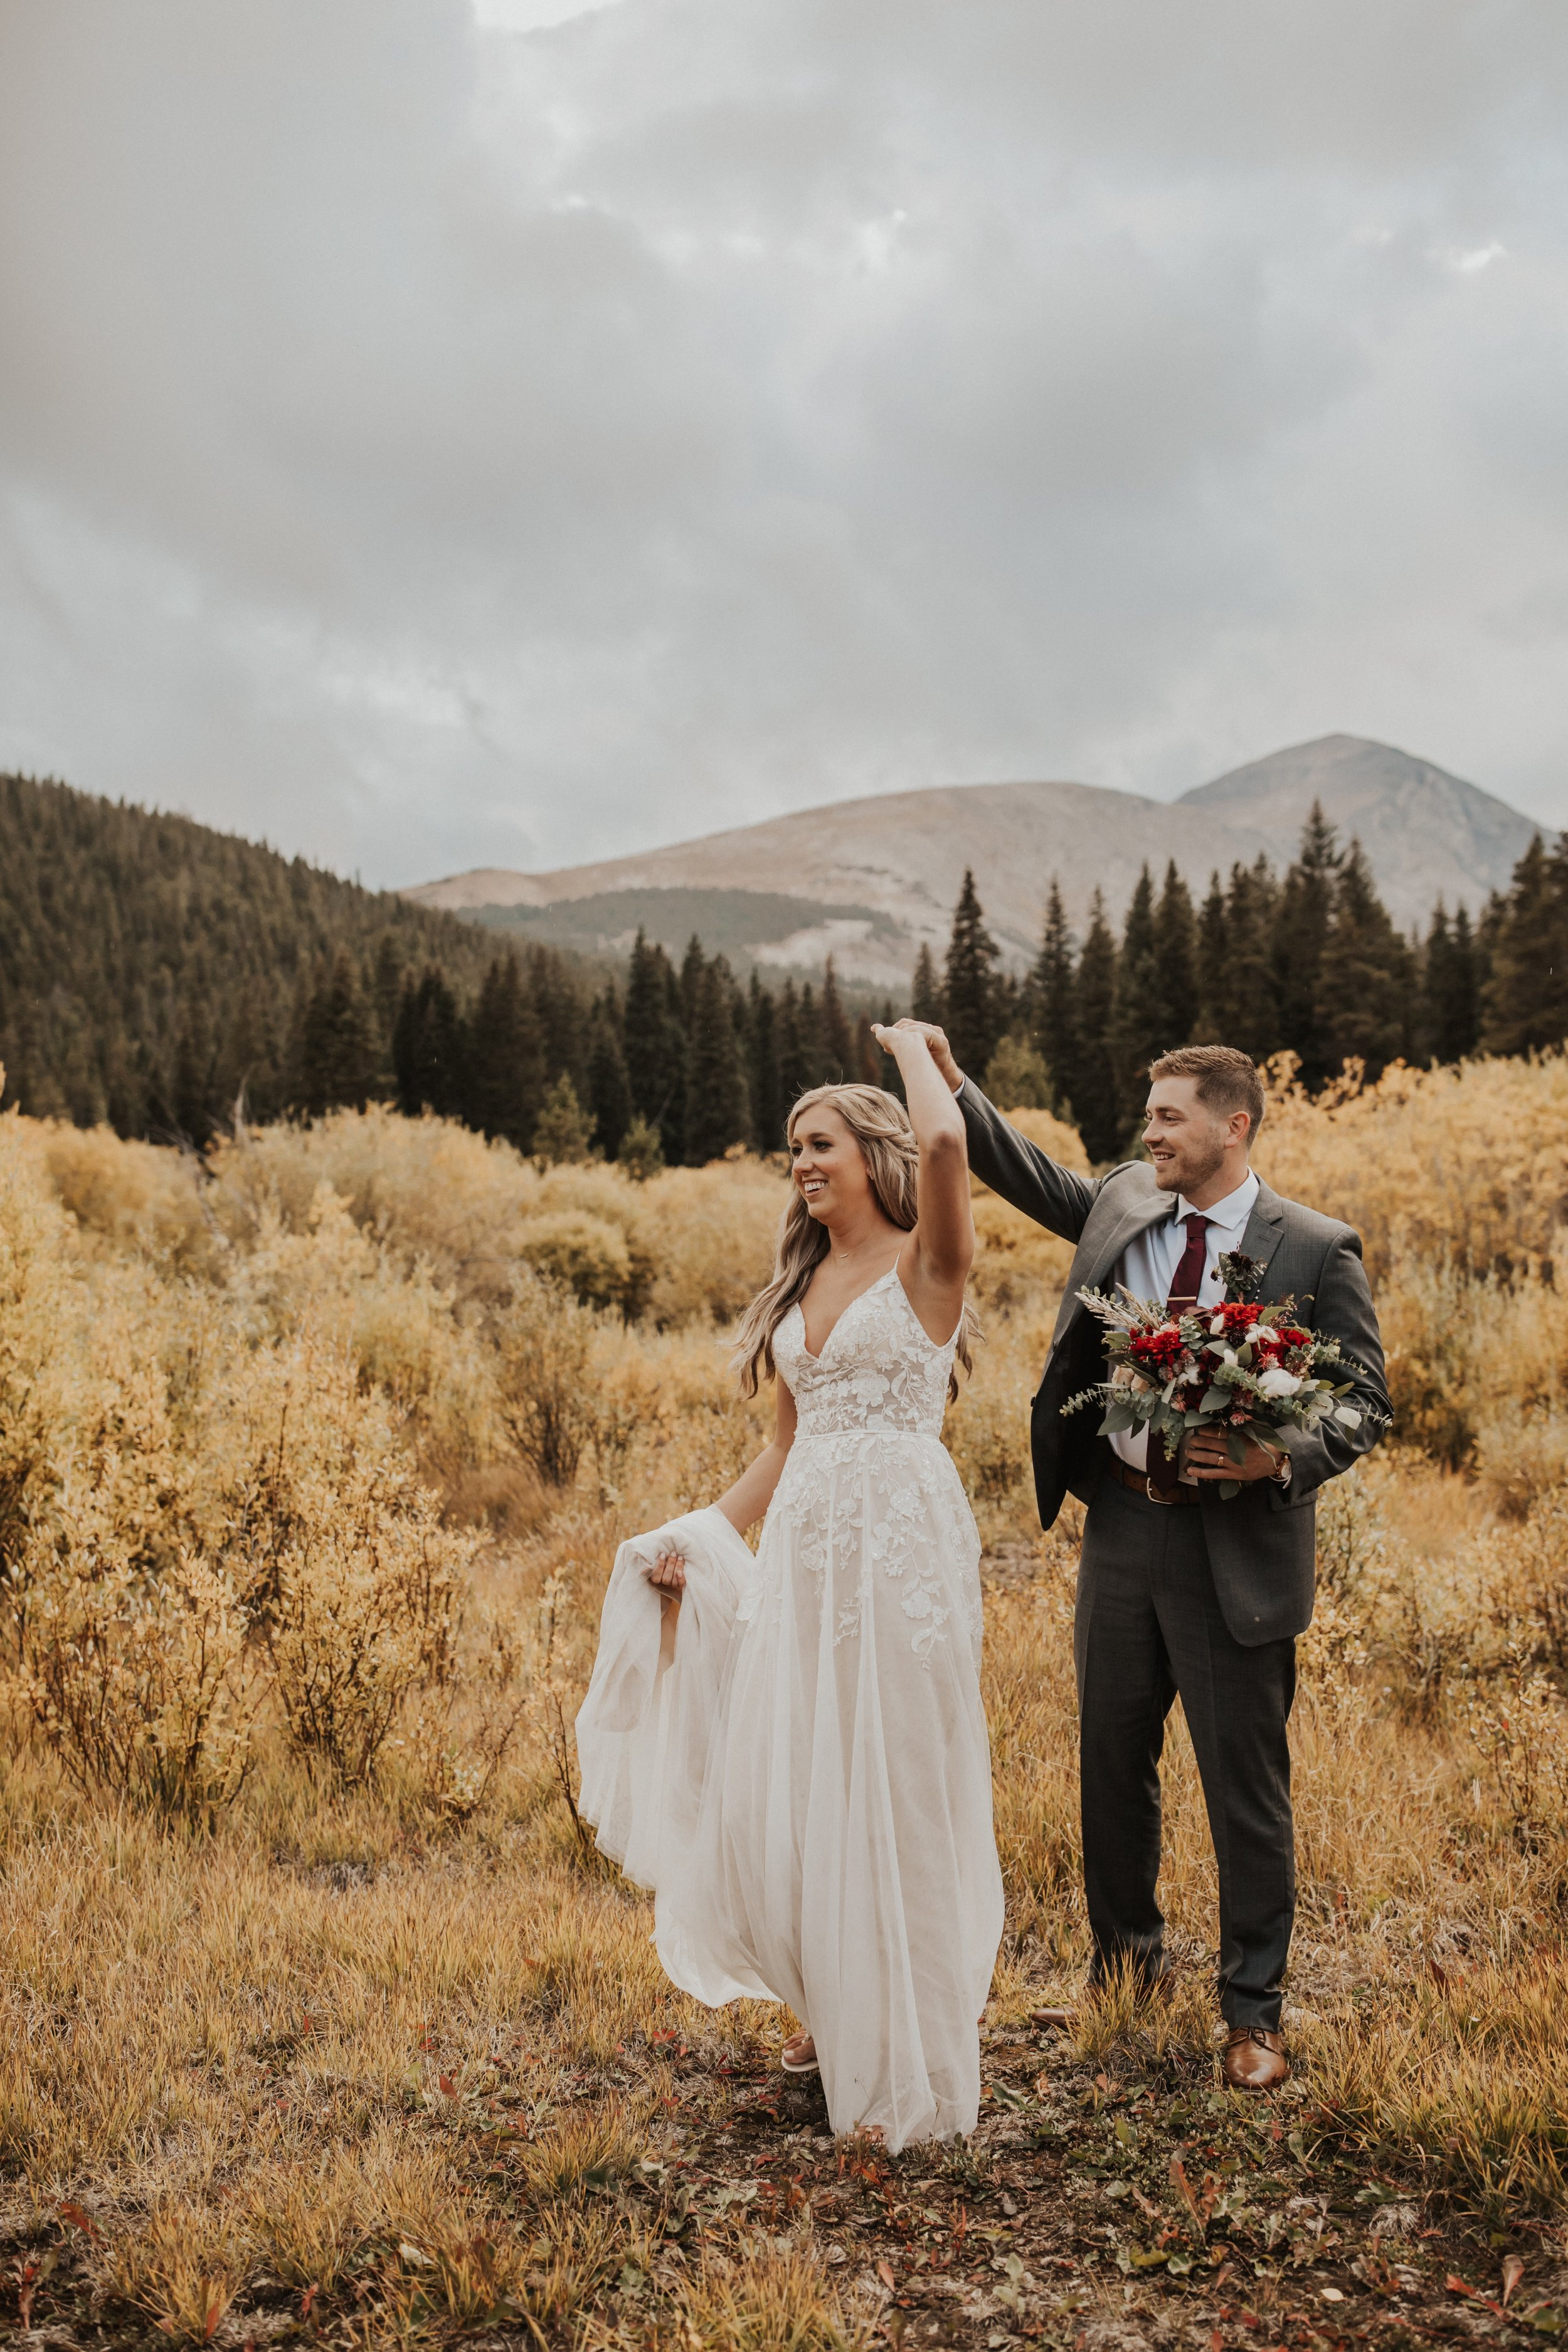 bride and groom dancing with custom floral arrangement at elopement in mountains.jpg